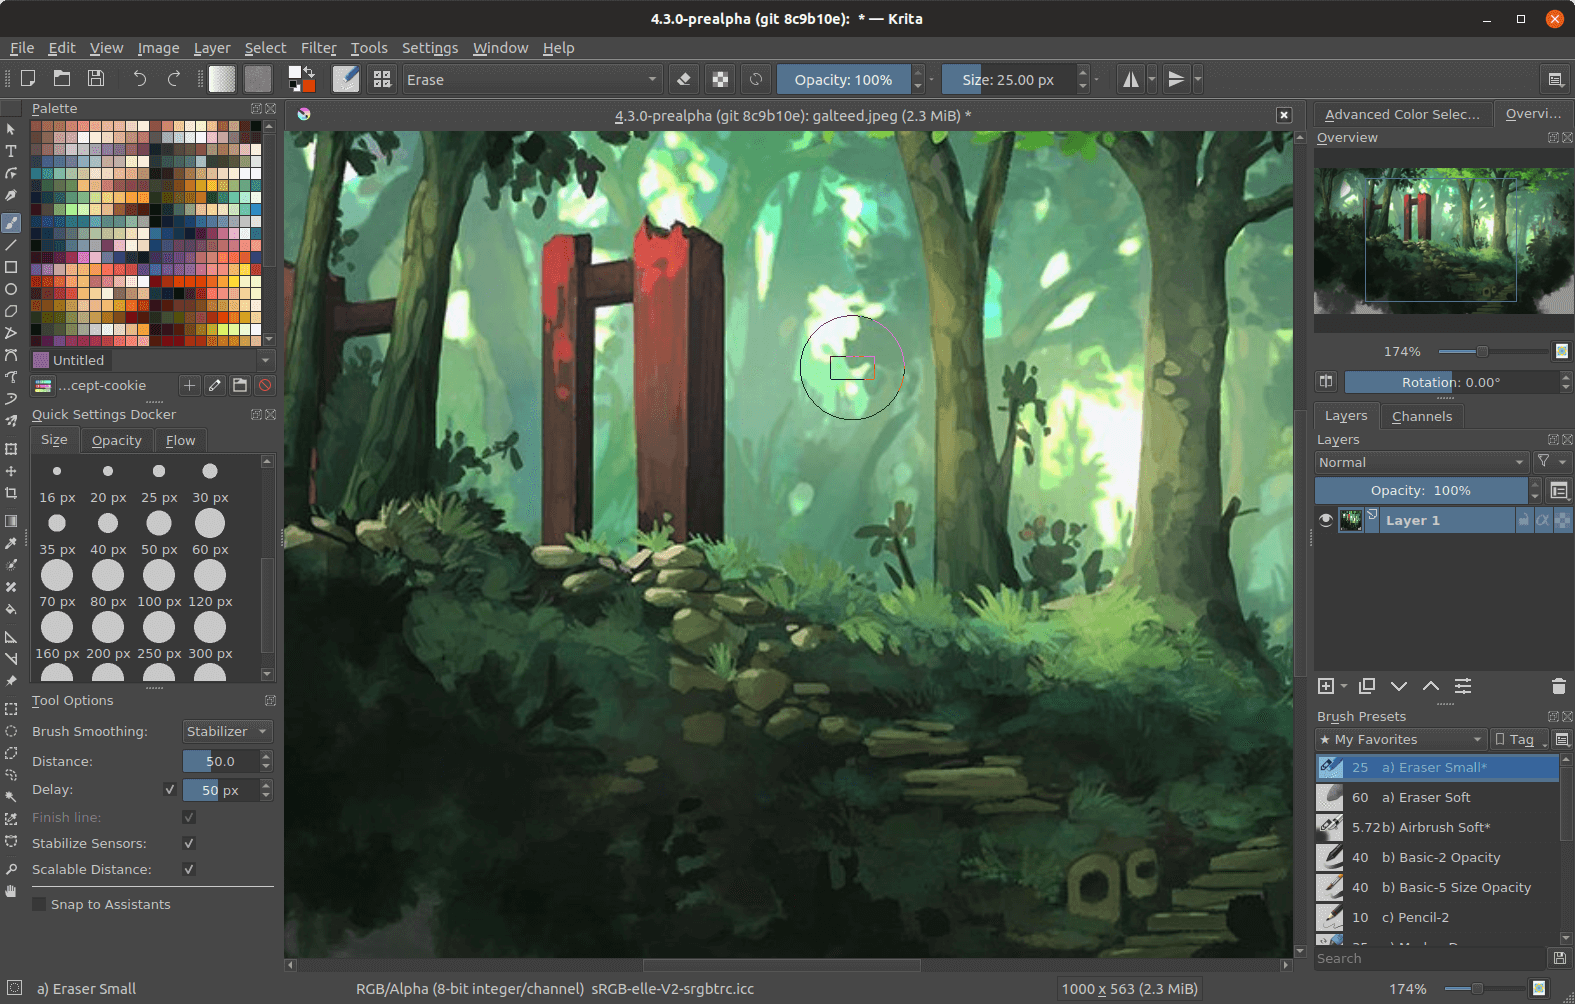 Krita is a professional FREE and open source painting program. It is made by artists that want to see affordable art tools for everyone. concept art texture and matte painters illustrations and comics